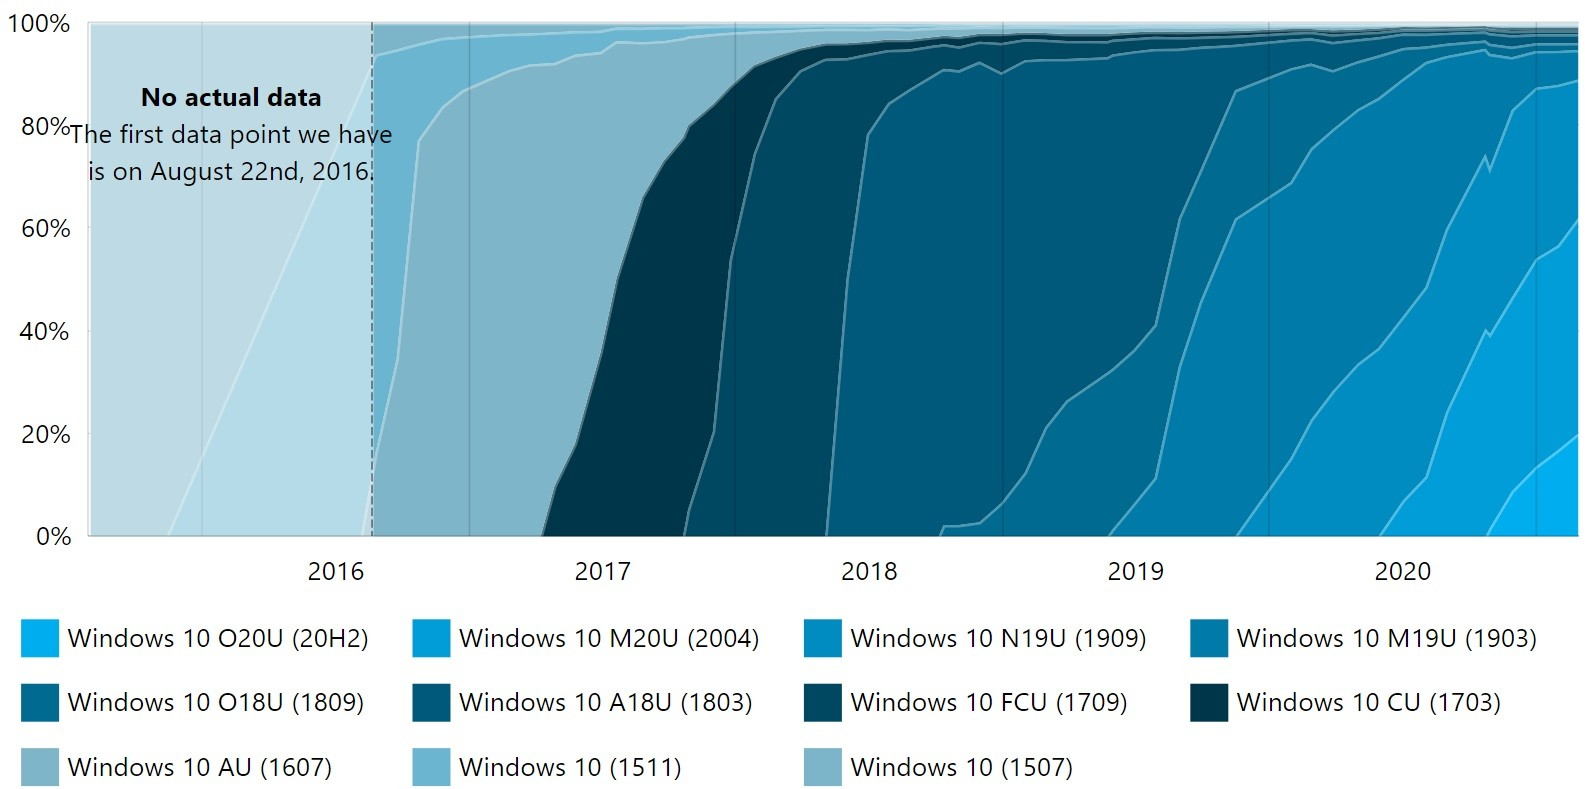 Usage trends for Windows 10 versions since August 2016 as of February 2021